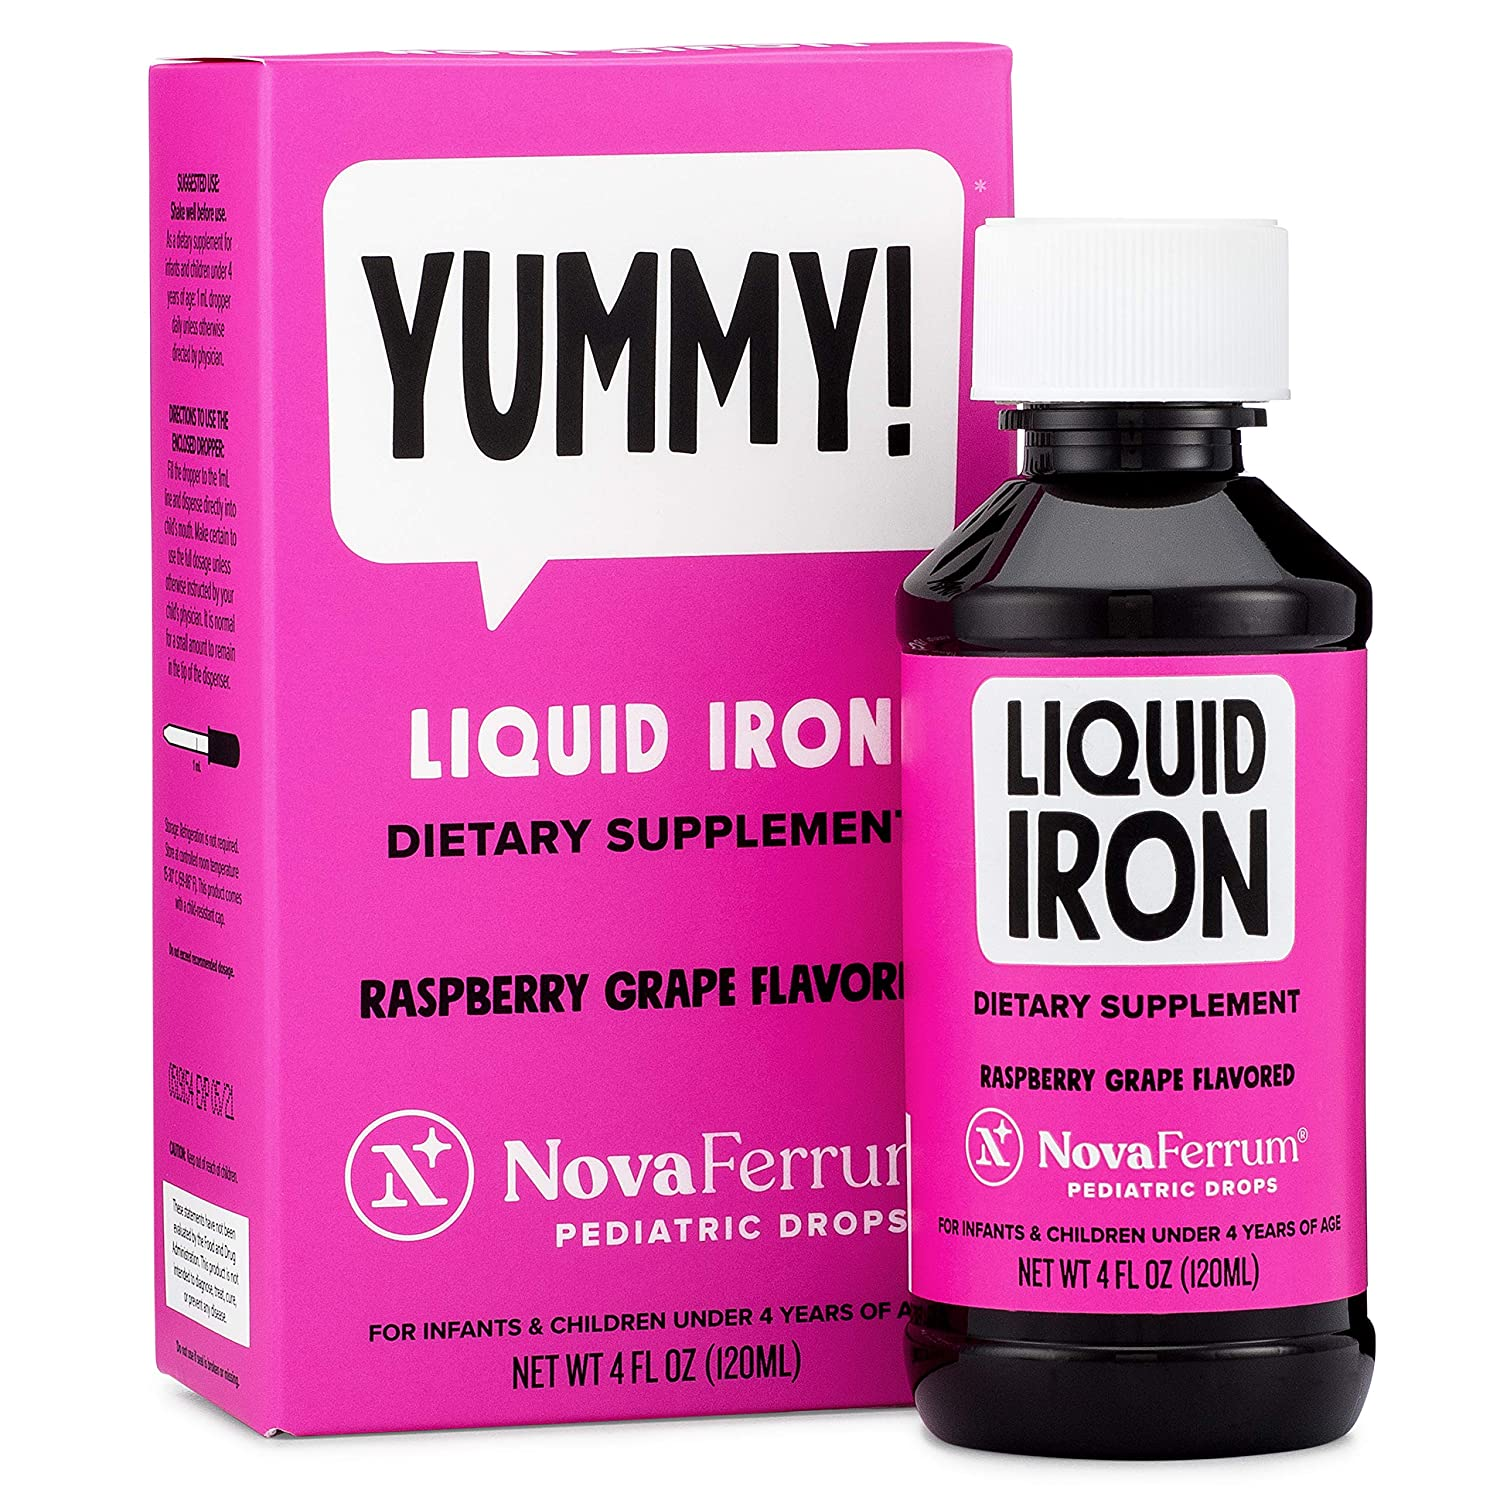 NovaFerrum Pediatric Drops Liquid Iron Supplement for Infants and Toddlers